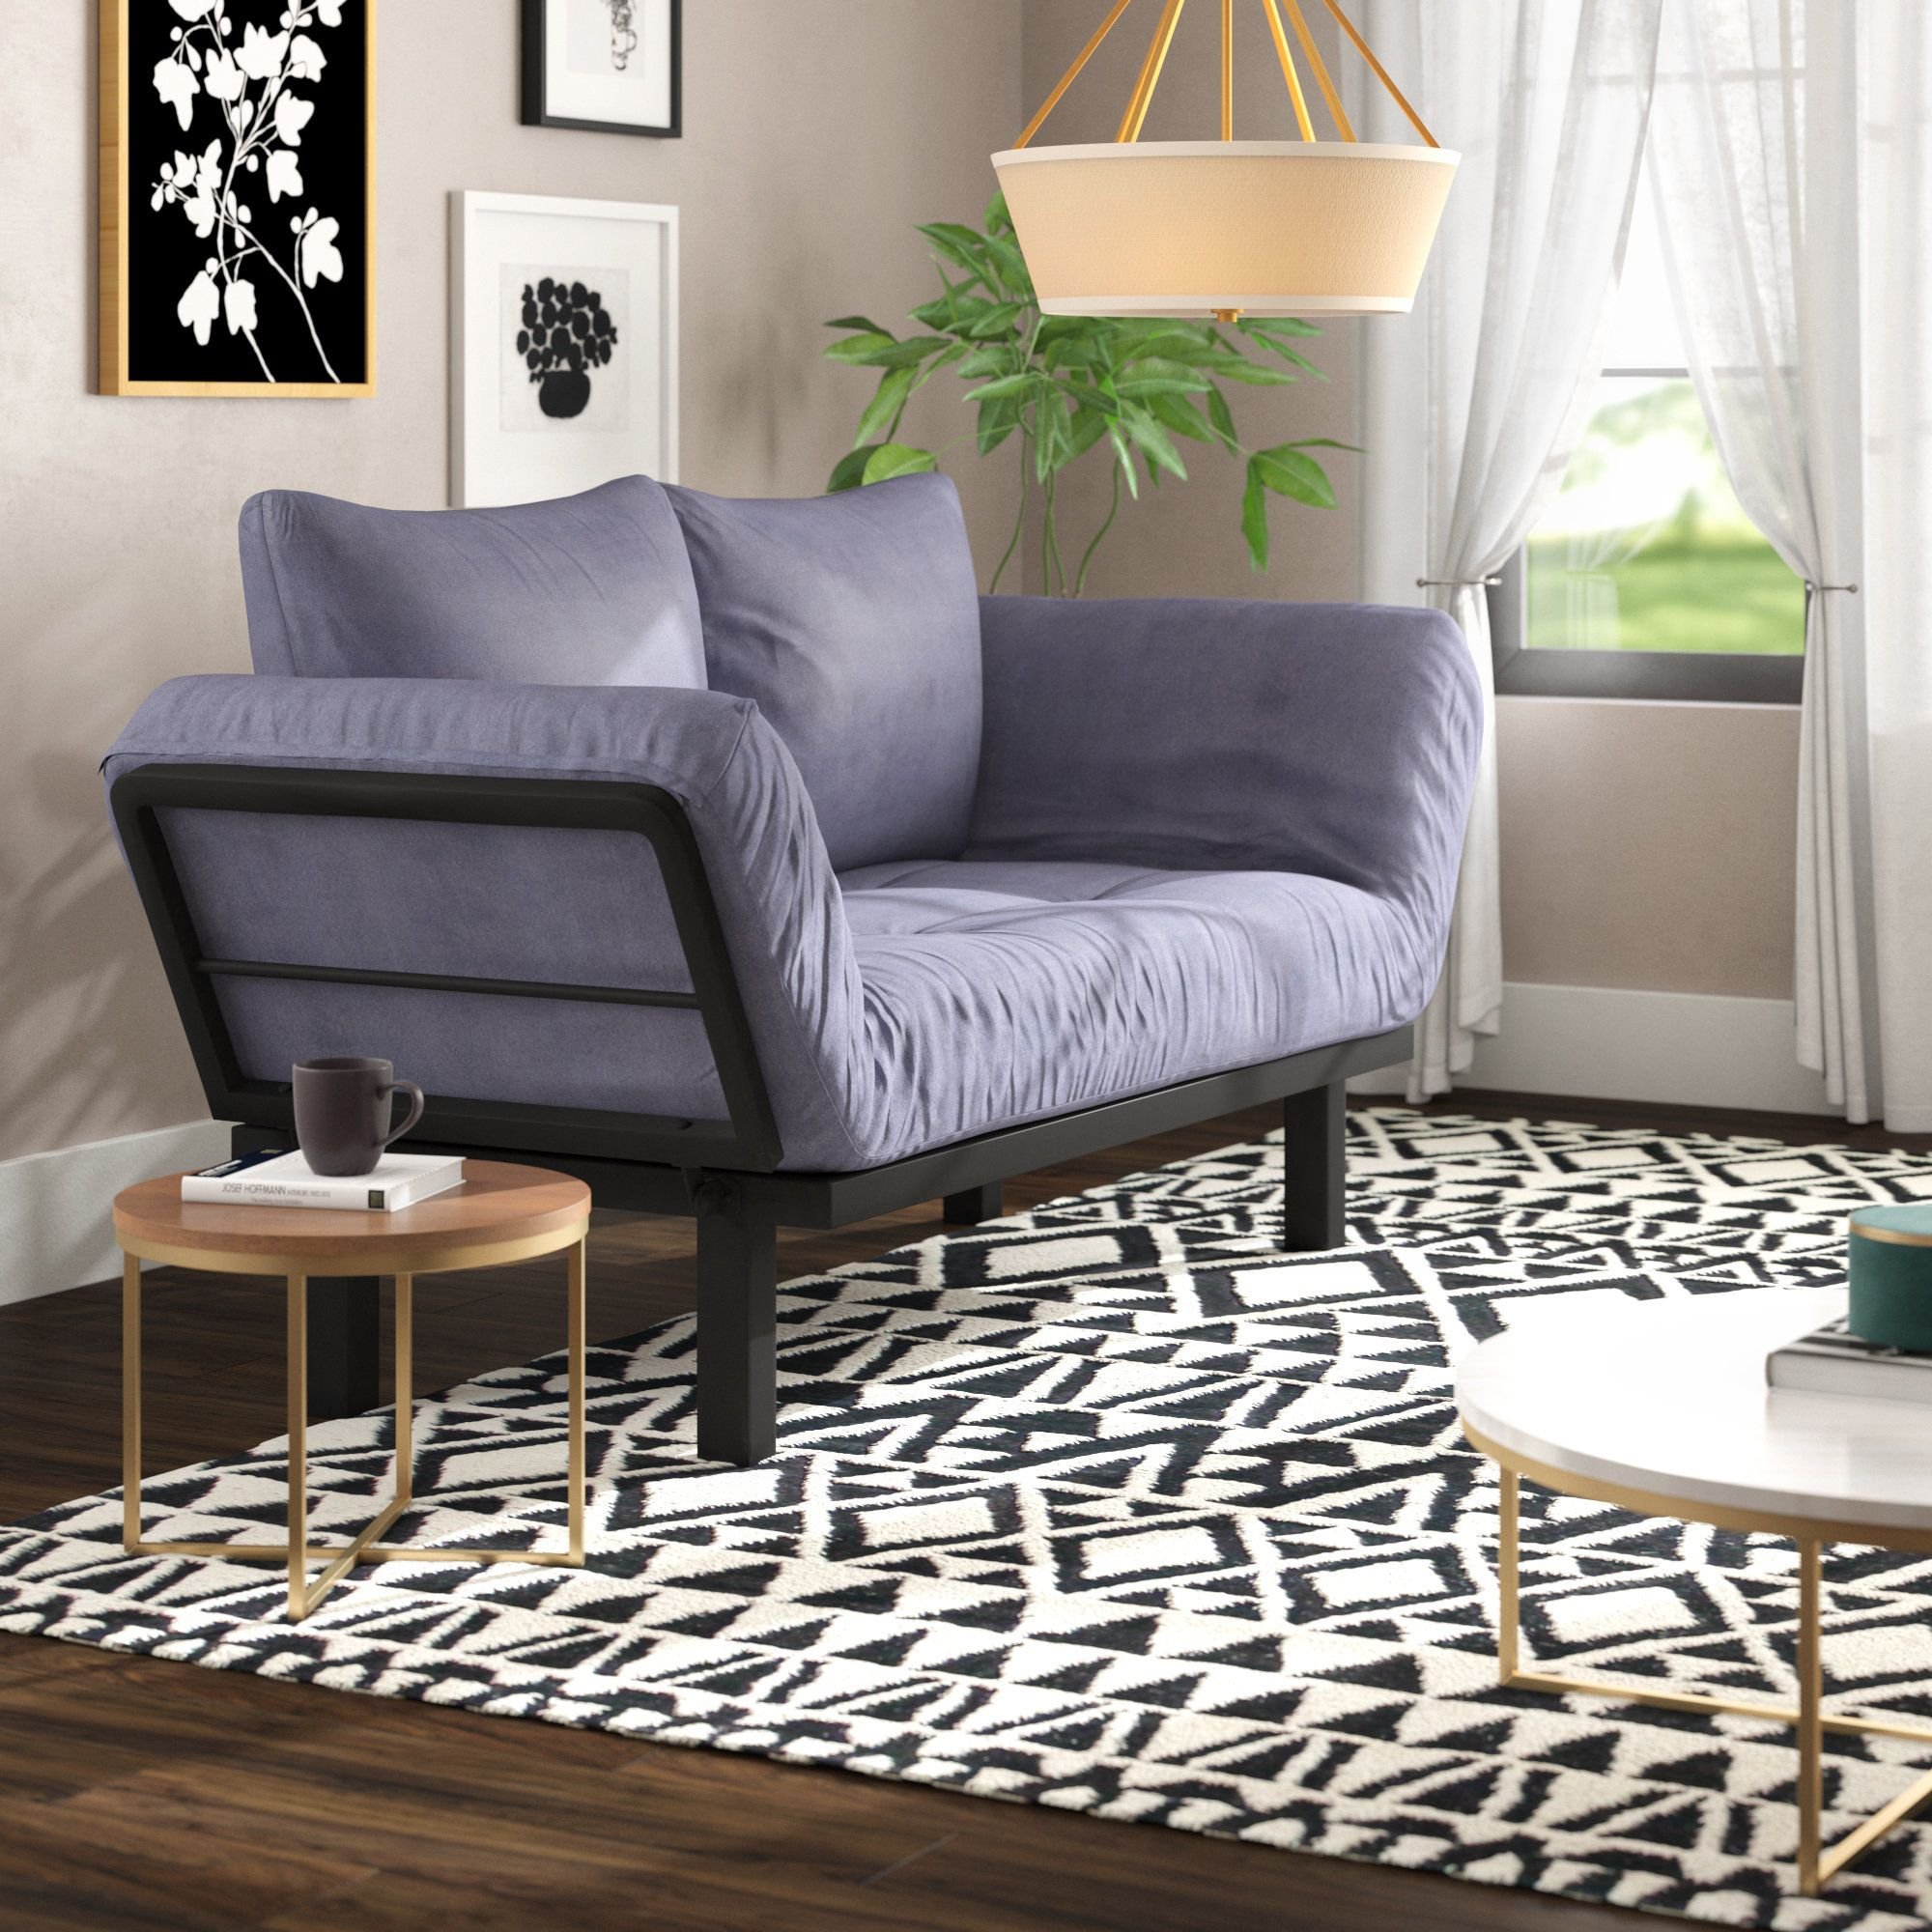 30 Futons That Are Nothing Like The One You Had In College within dimensions 2000 X 2000